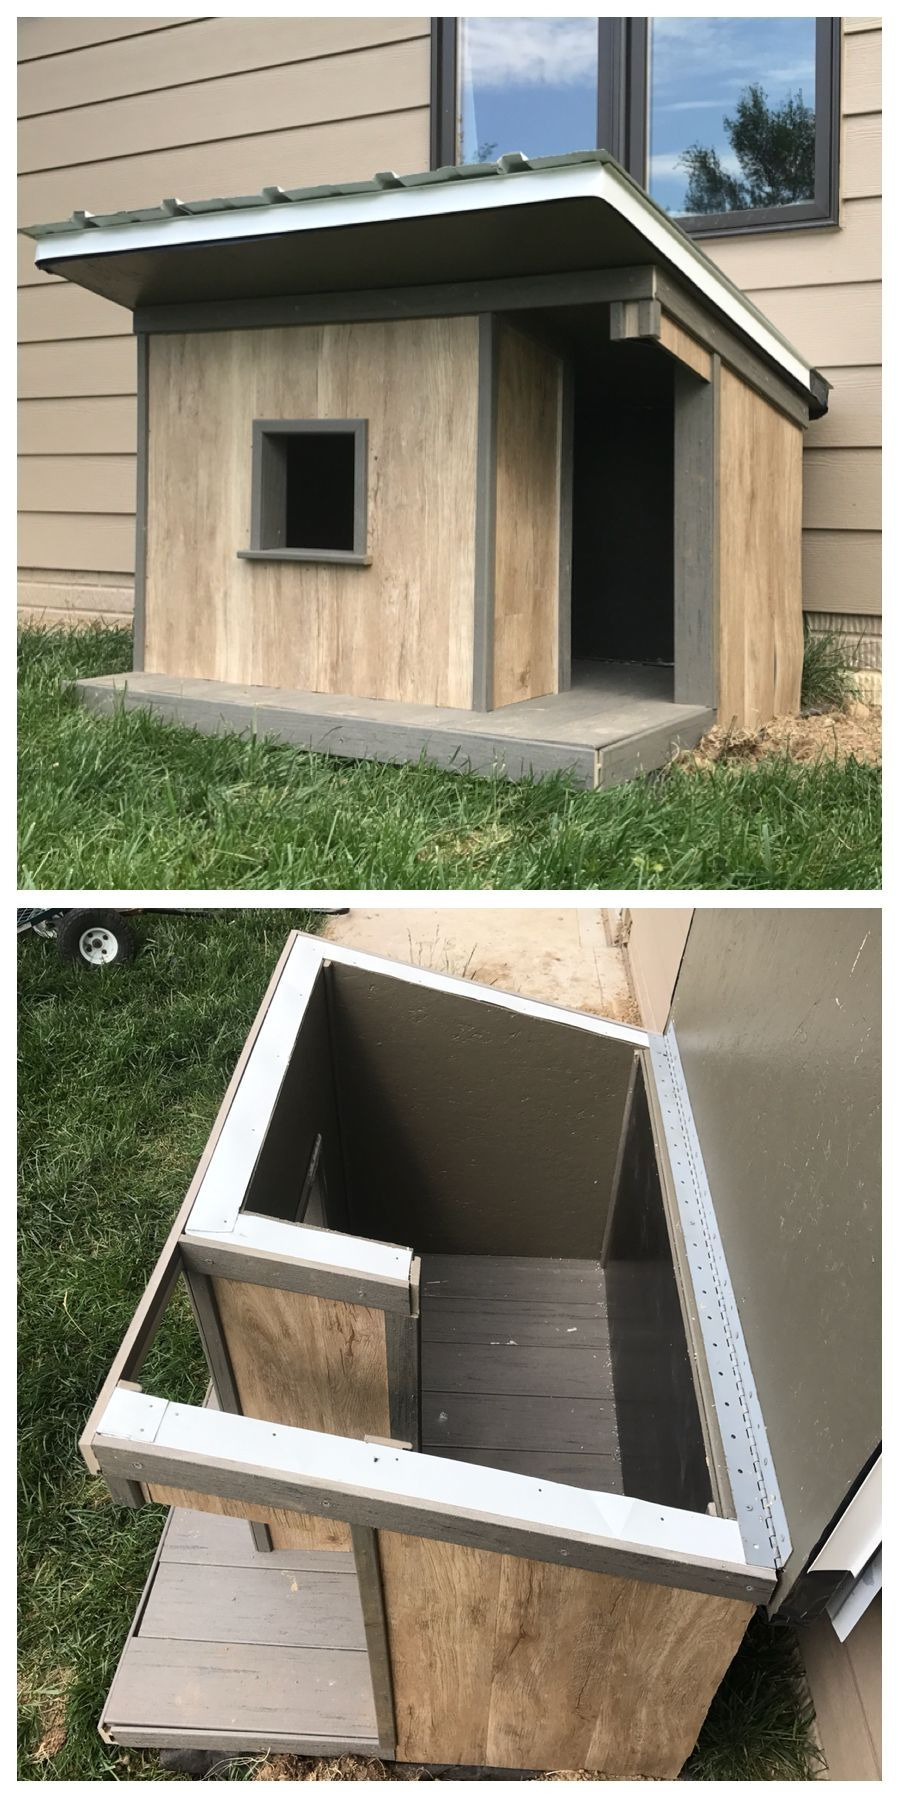 Plans for Dog House Beautiful Cold Weather Dog House Plans